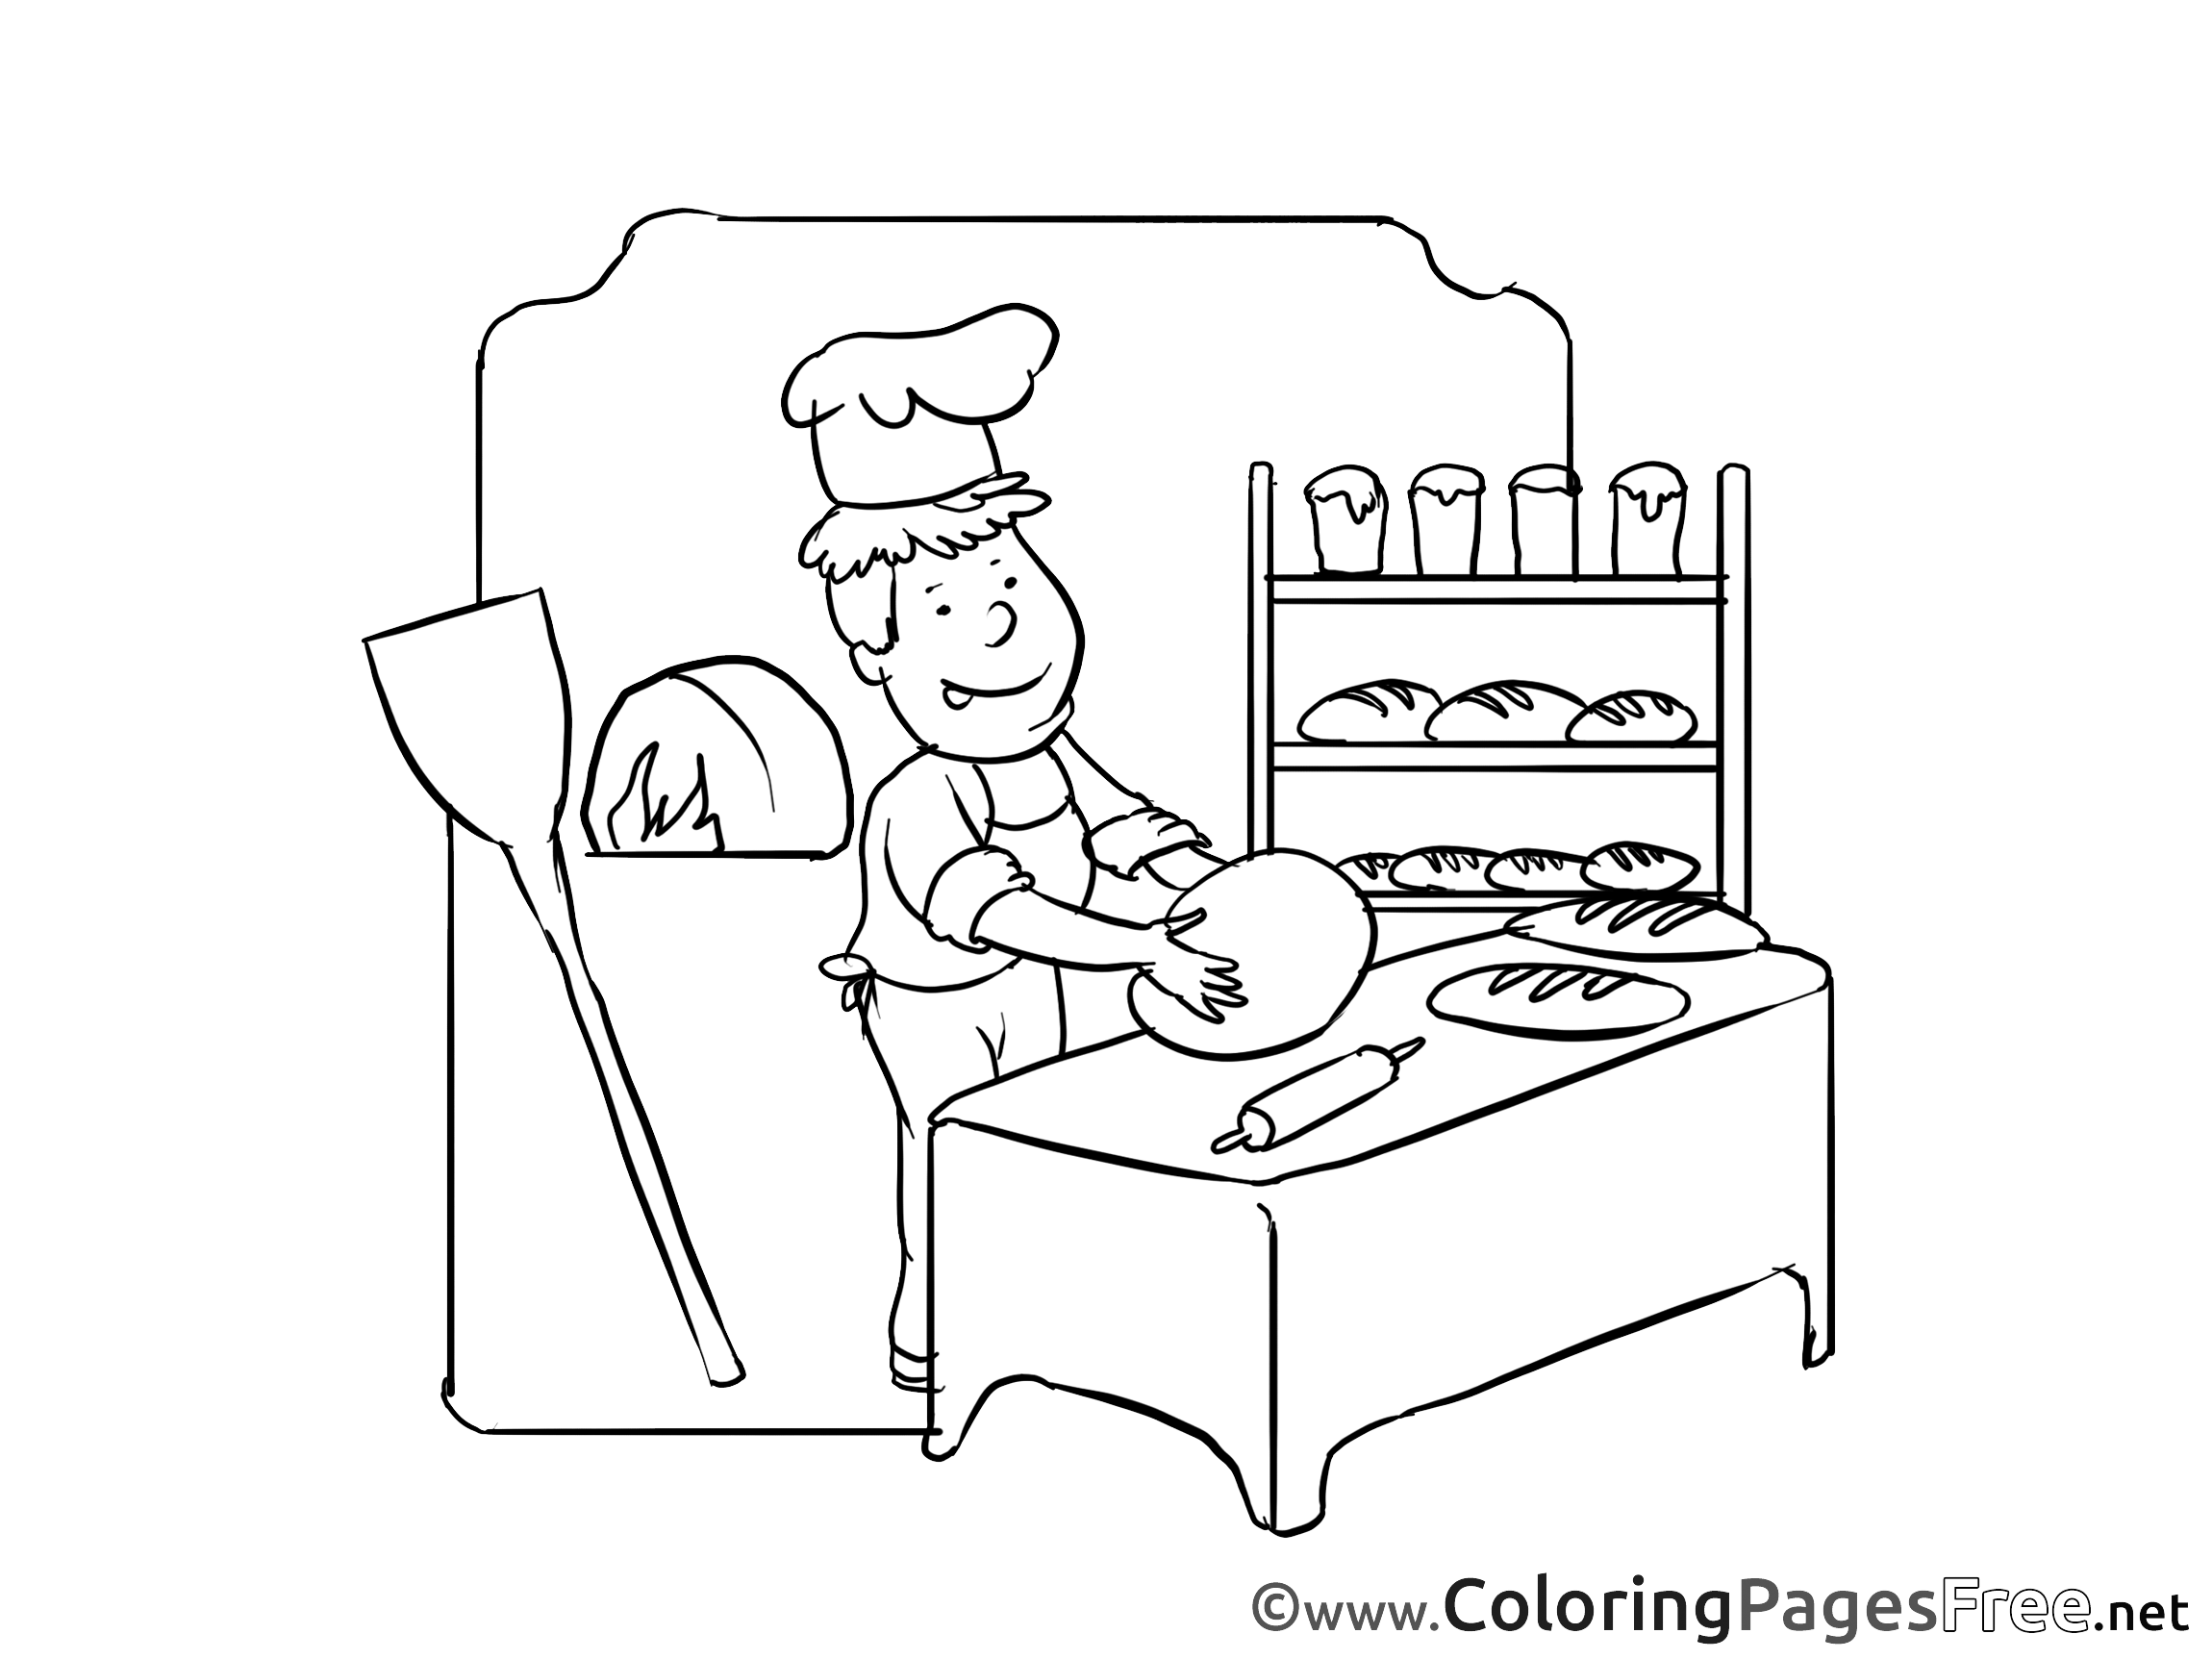 Baker Kids Invitation Coloring Page